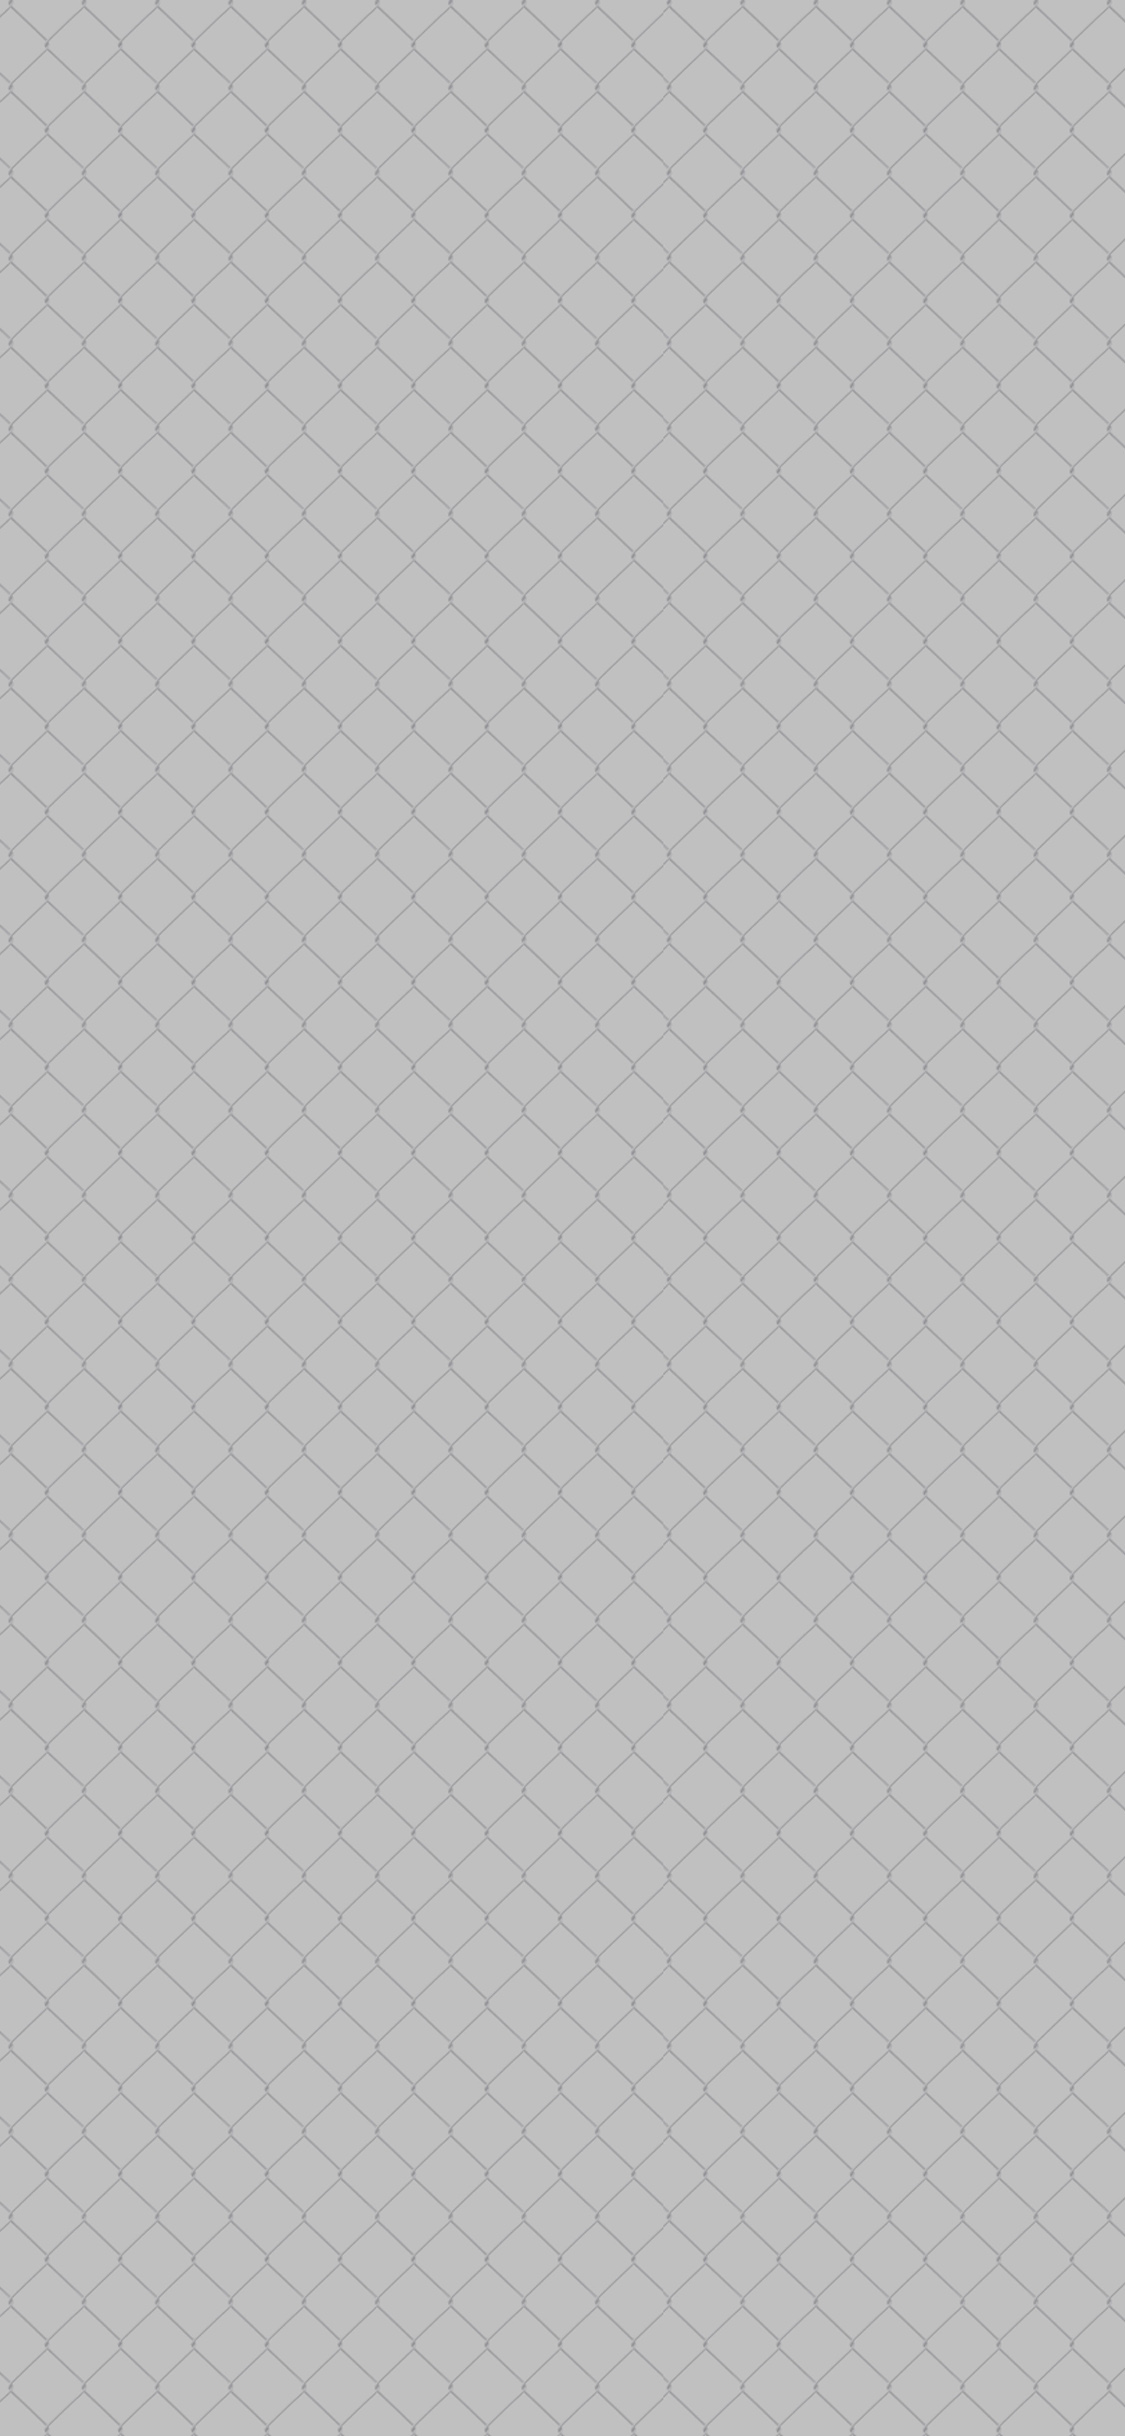 iPhonexpapers.com-Apple-iPhone-wallpaper-vi22-chain-link-white-pattern